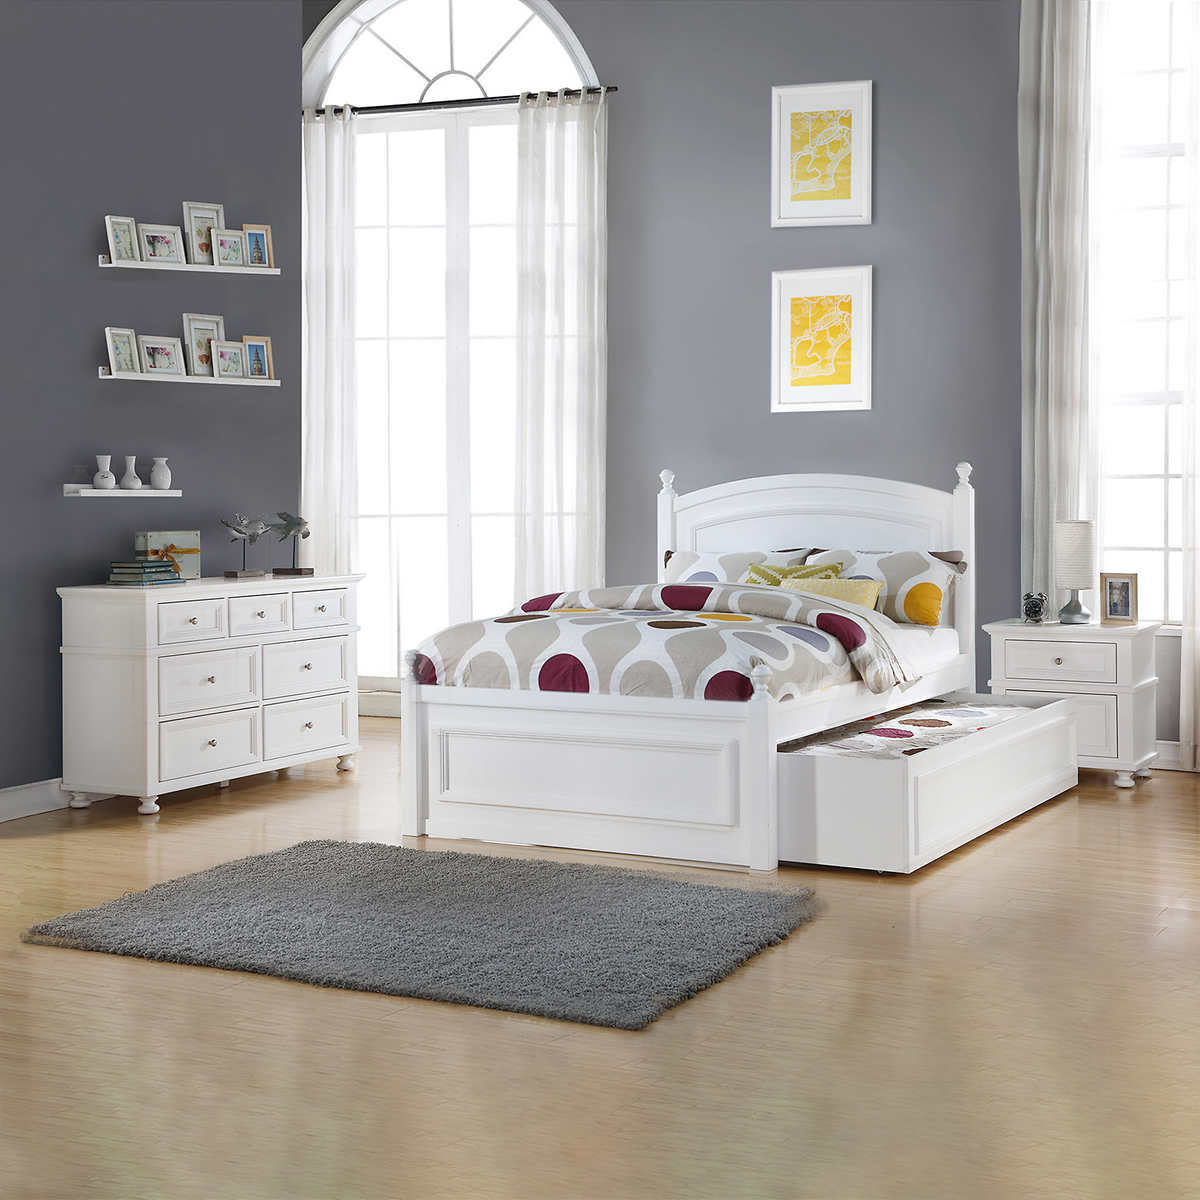 Ava 3-piece Set with Double Bed